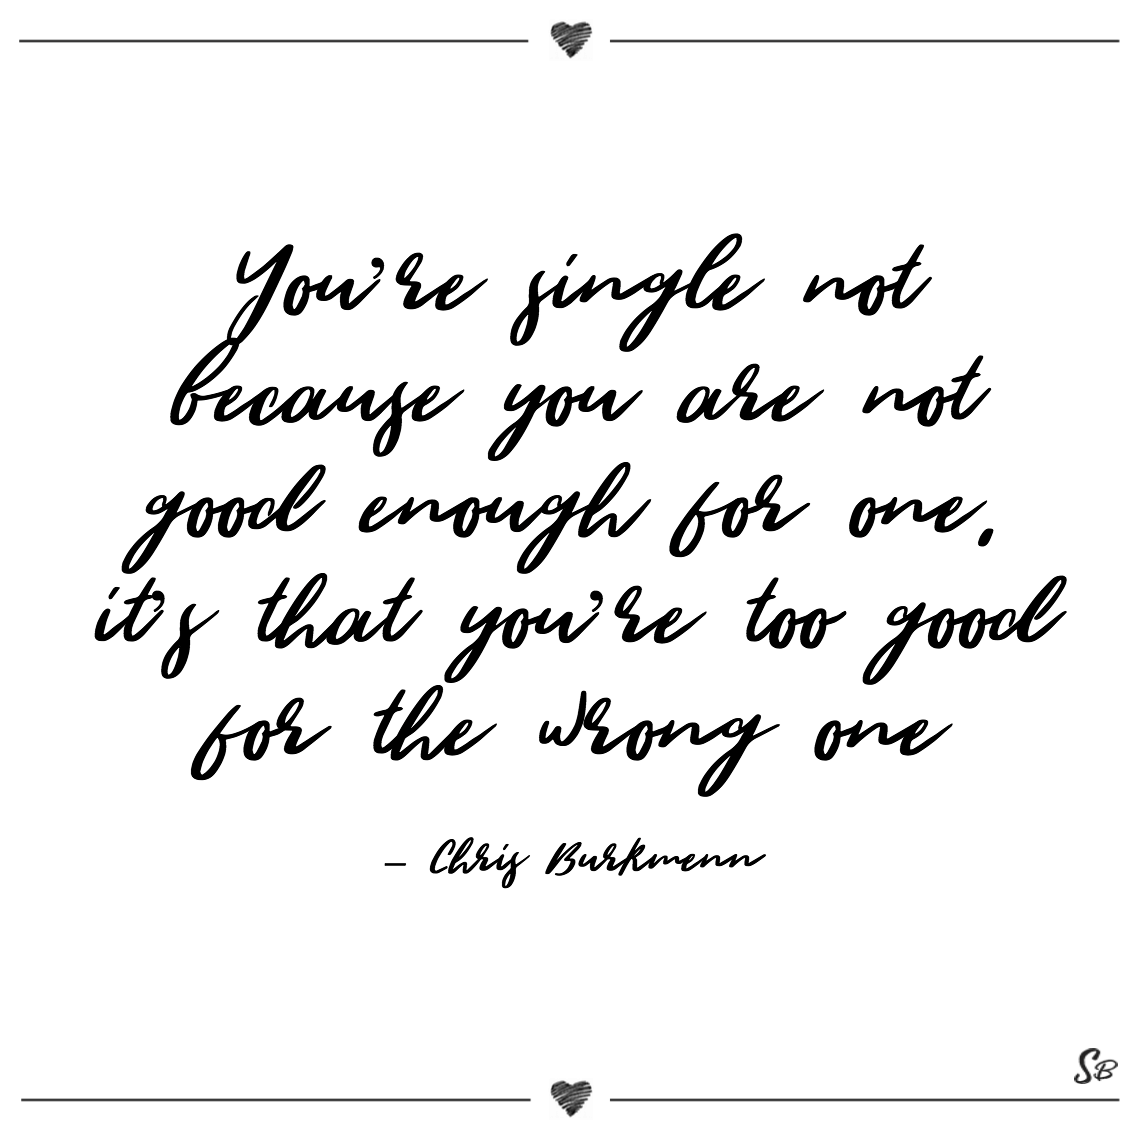 You're single not because you are not good enough for one, it's that you're too good for the wrong one chris burkmenn